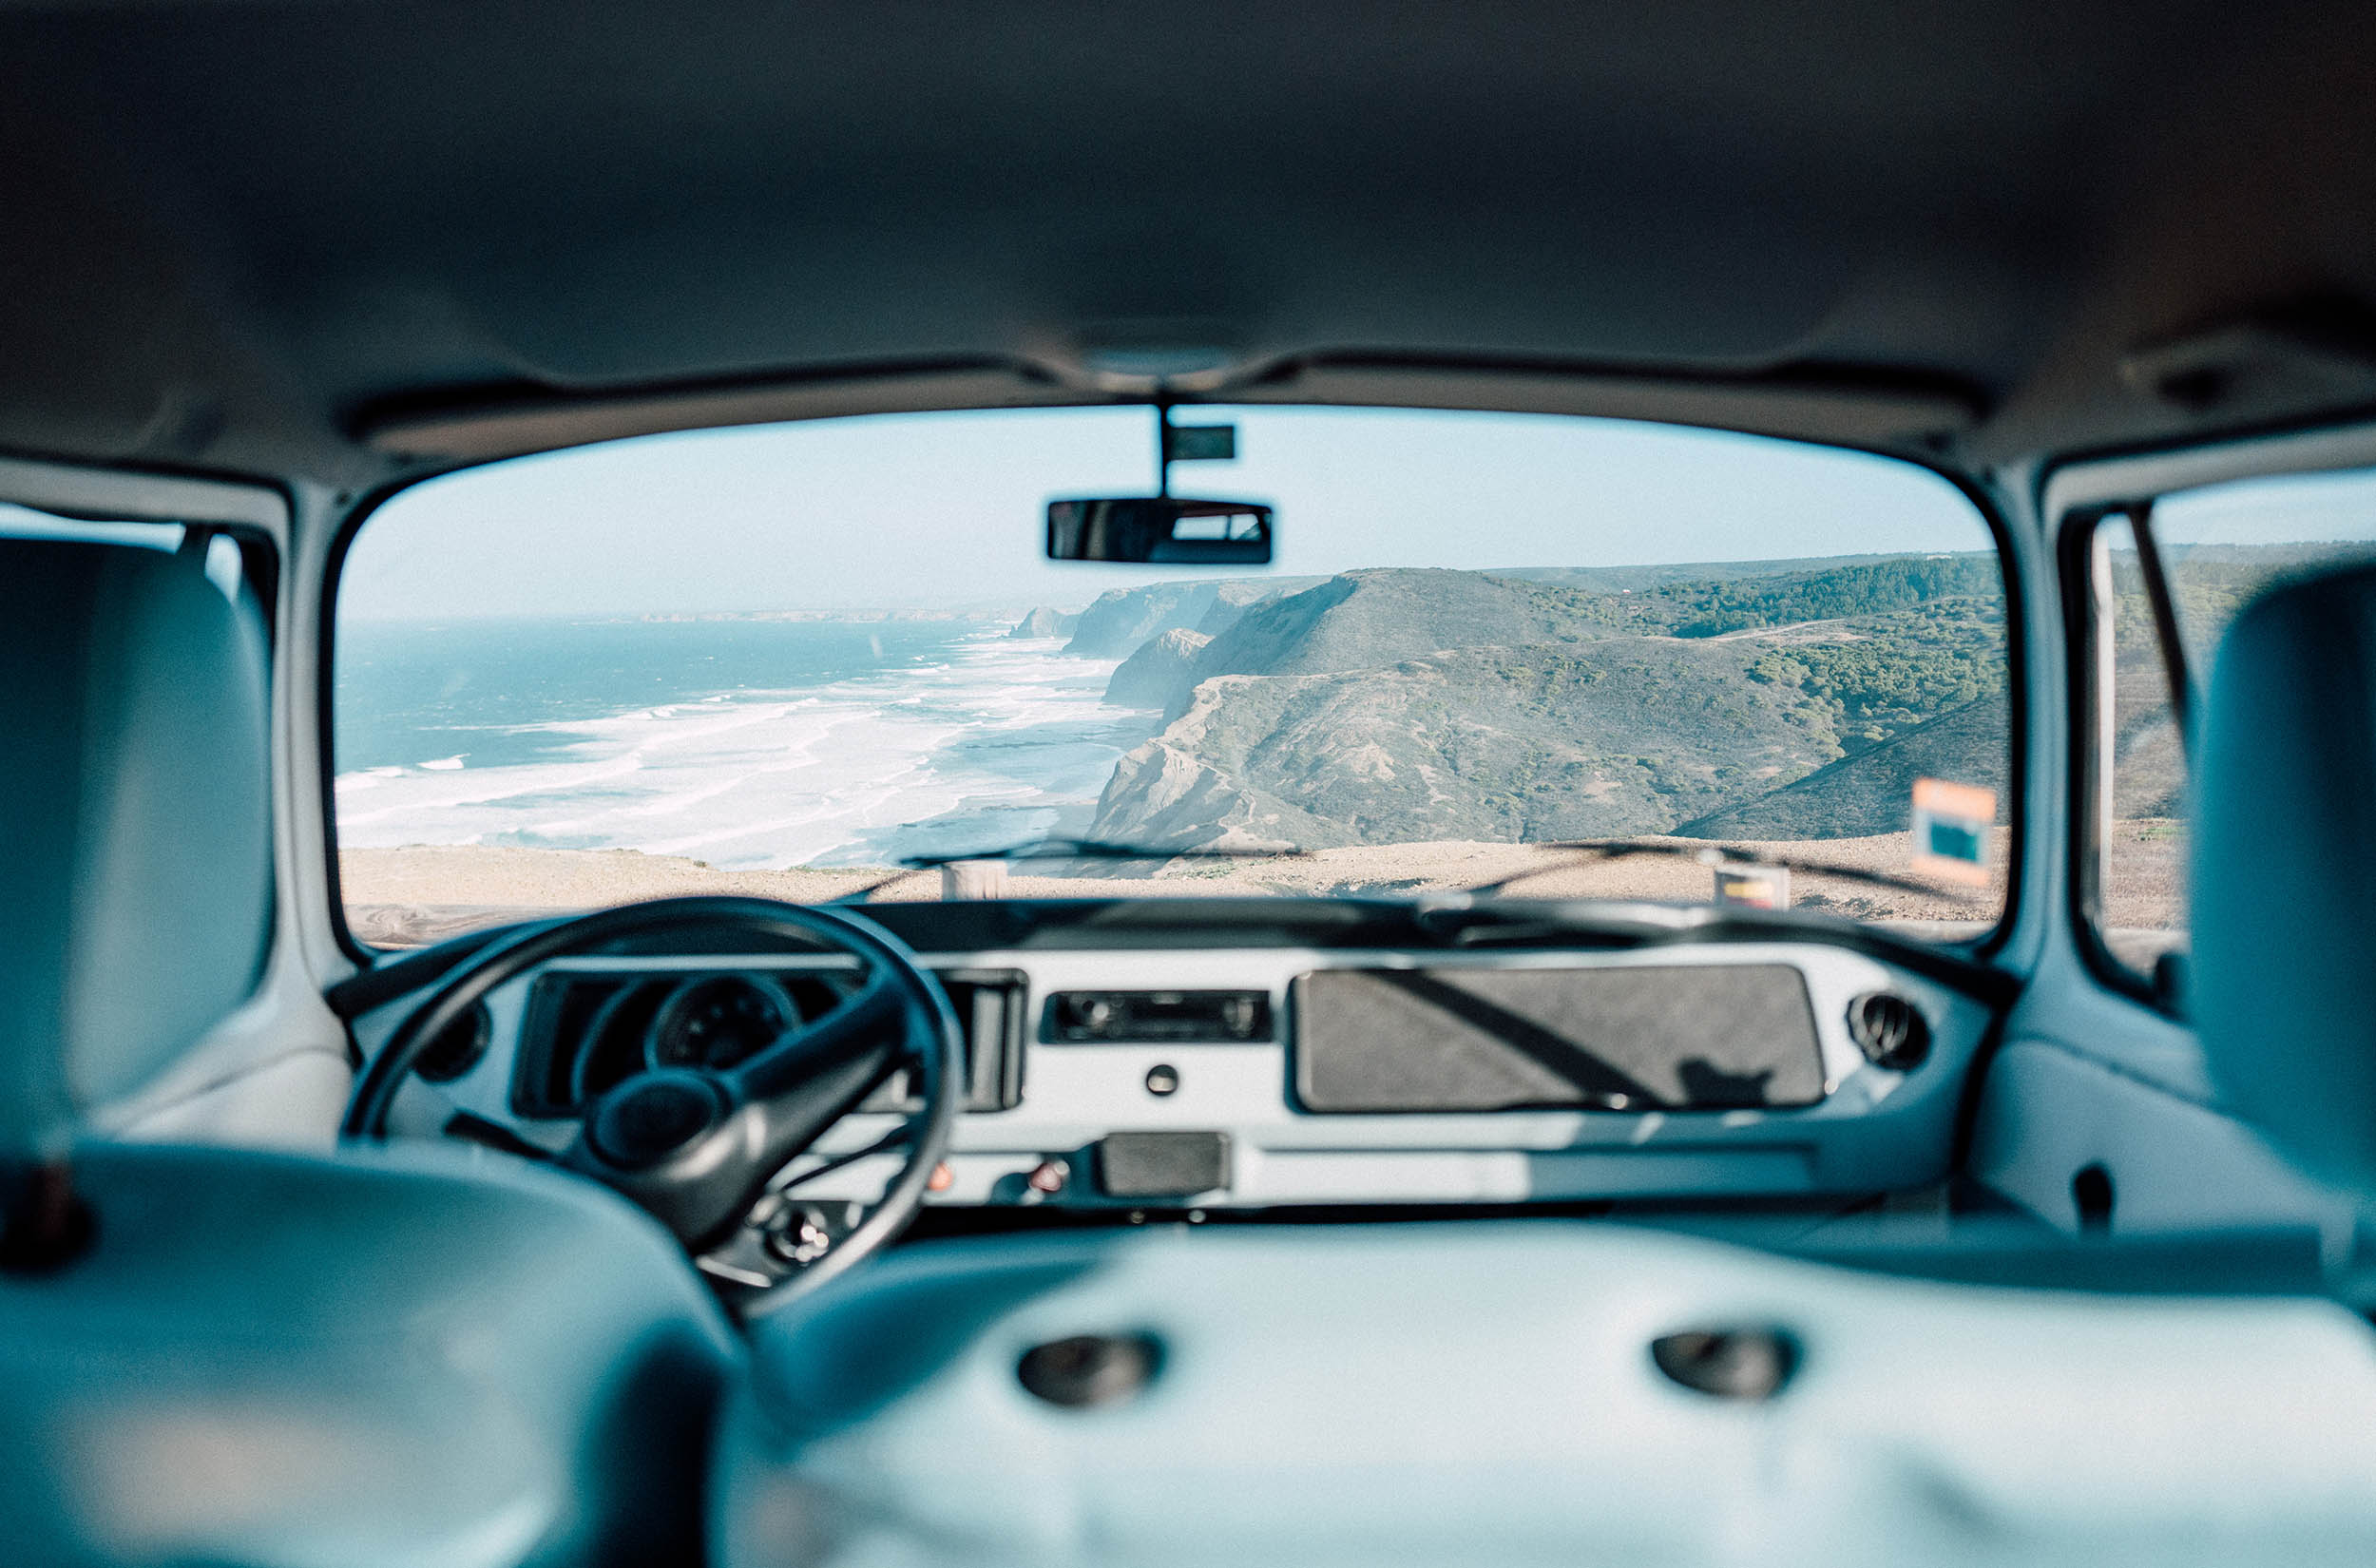 Idyllic Portugal coastline and top beach from the interior of a VW camper.